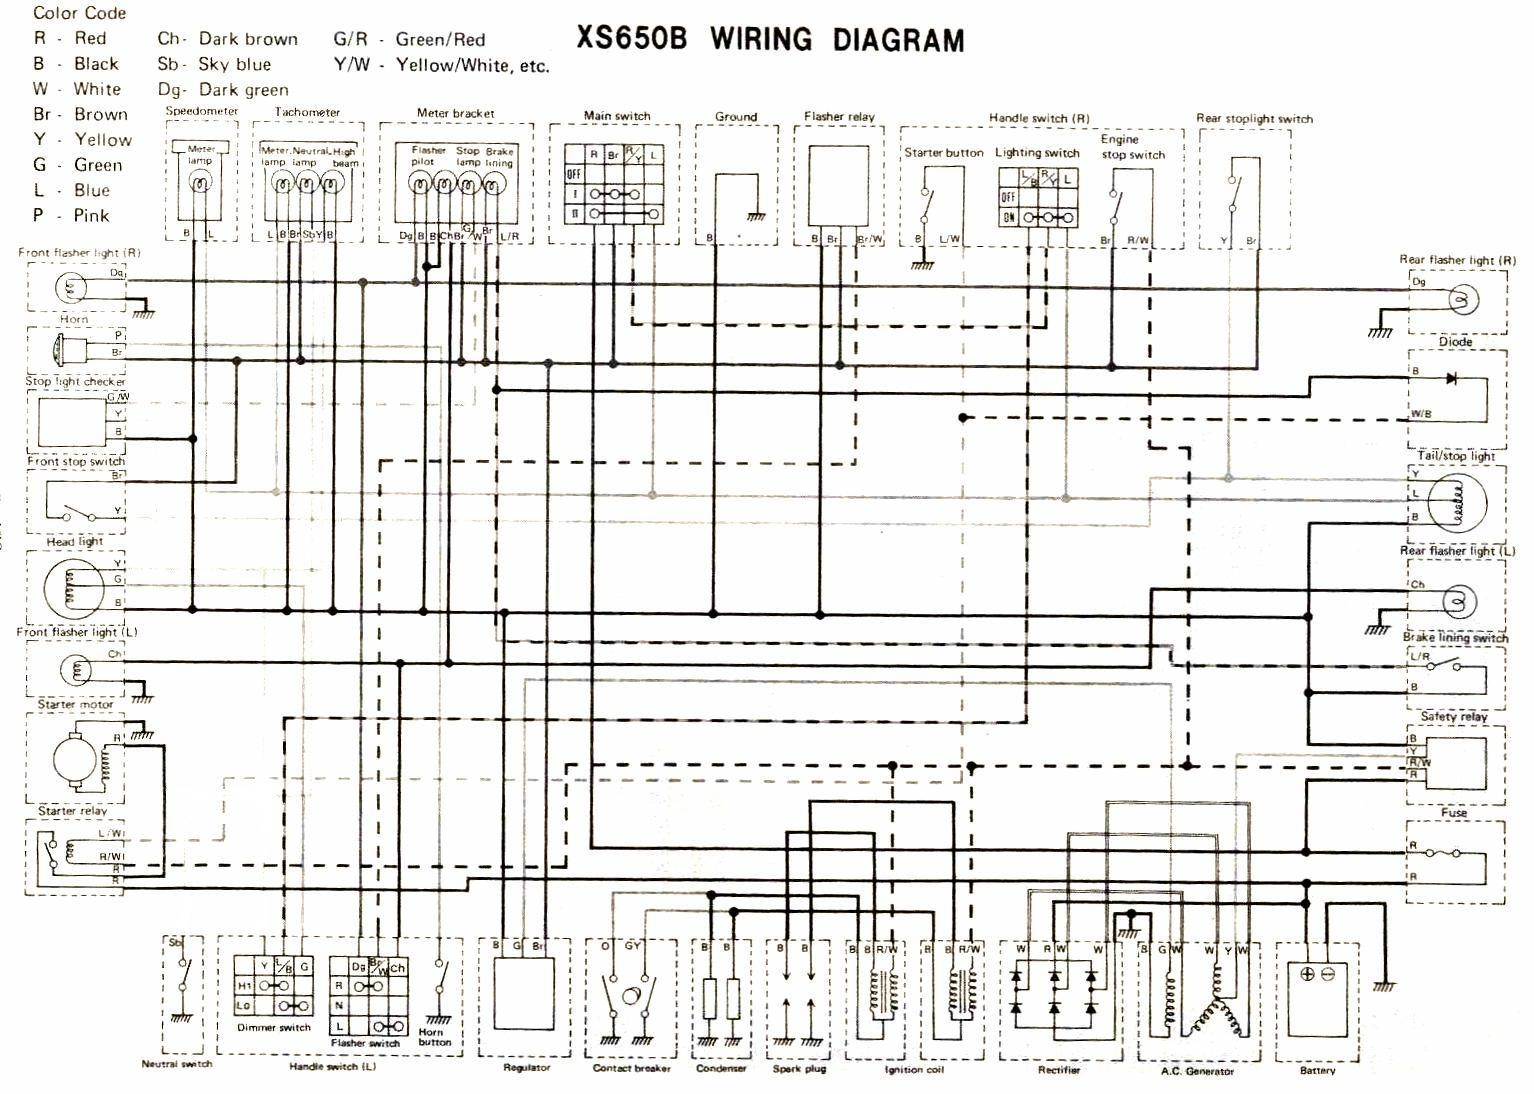 V Star Wiring Diagram - Wiring Diagram Meta Star Flasher Wiring Diagram on turn signal flasher diagram, flasher relay, flasher circuit diagram,